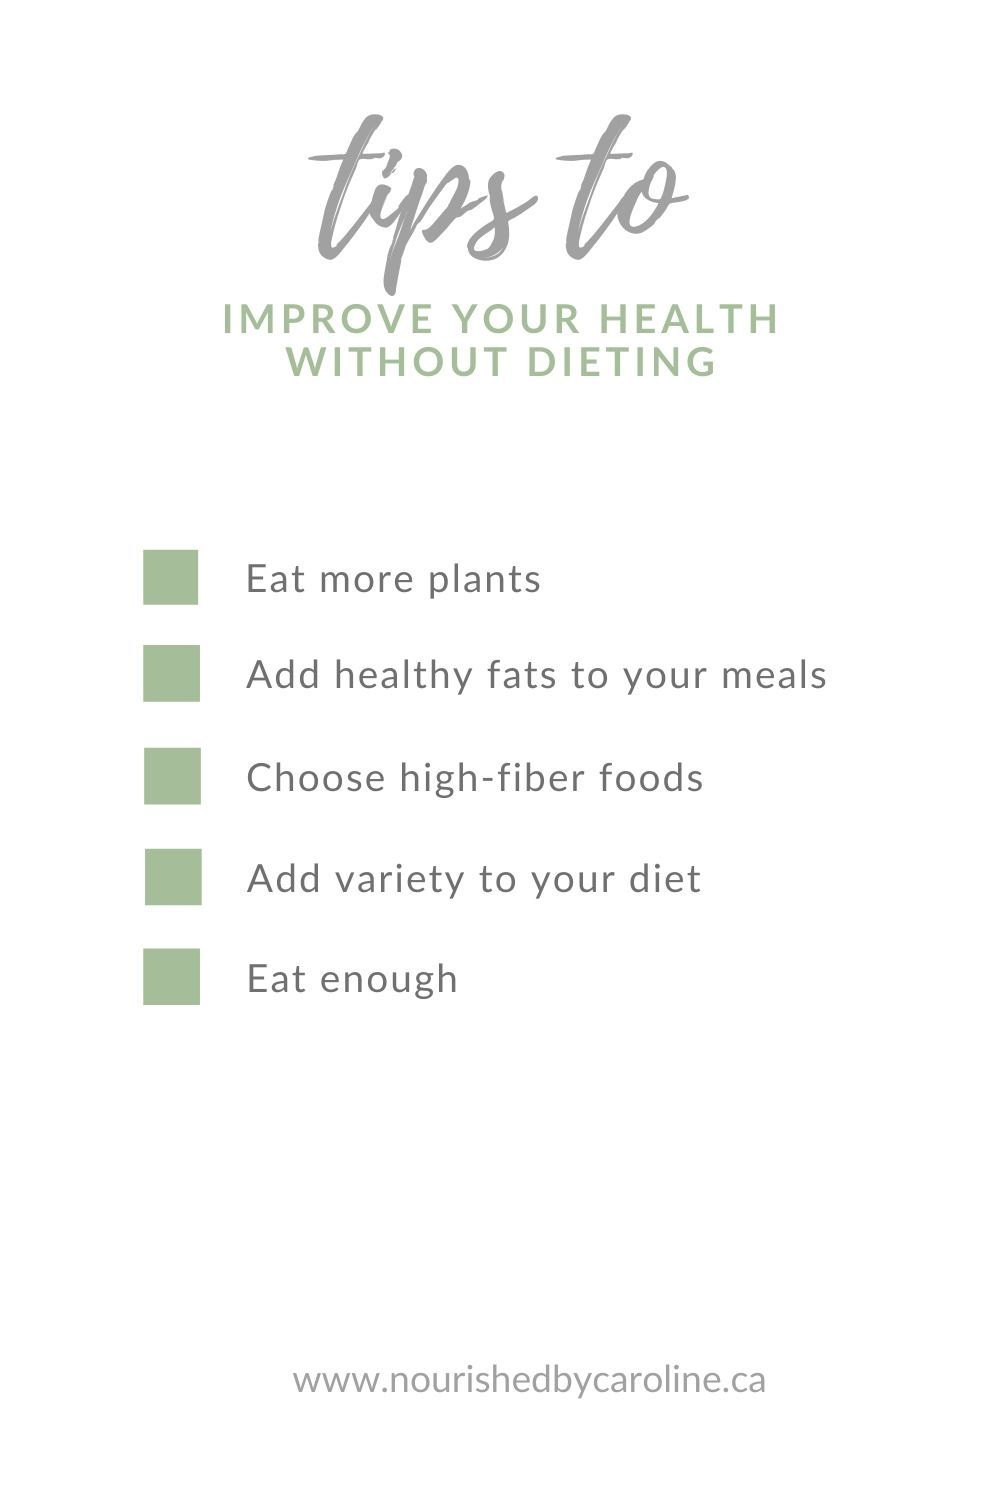 list of nutrition tips to improve your health without dieting